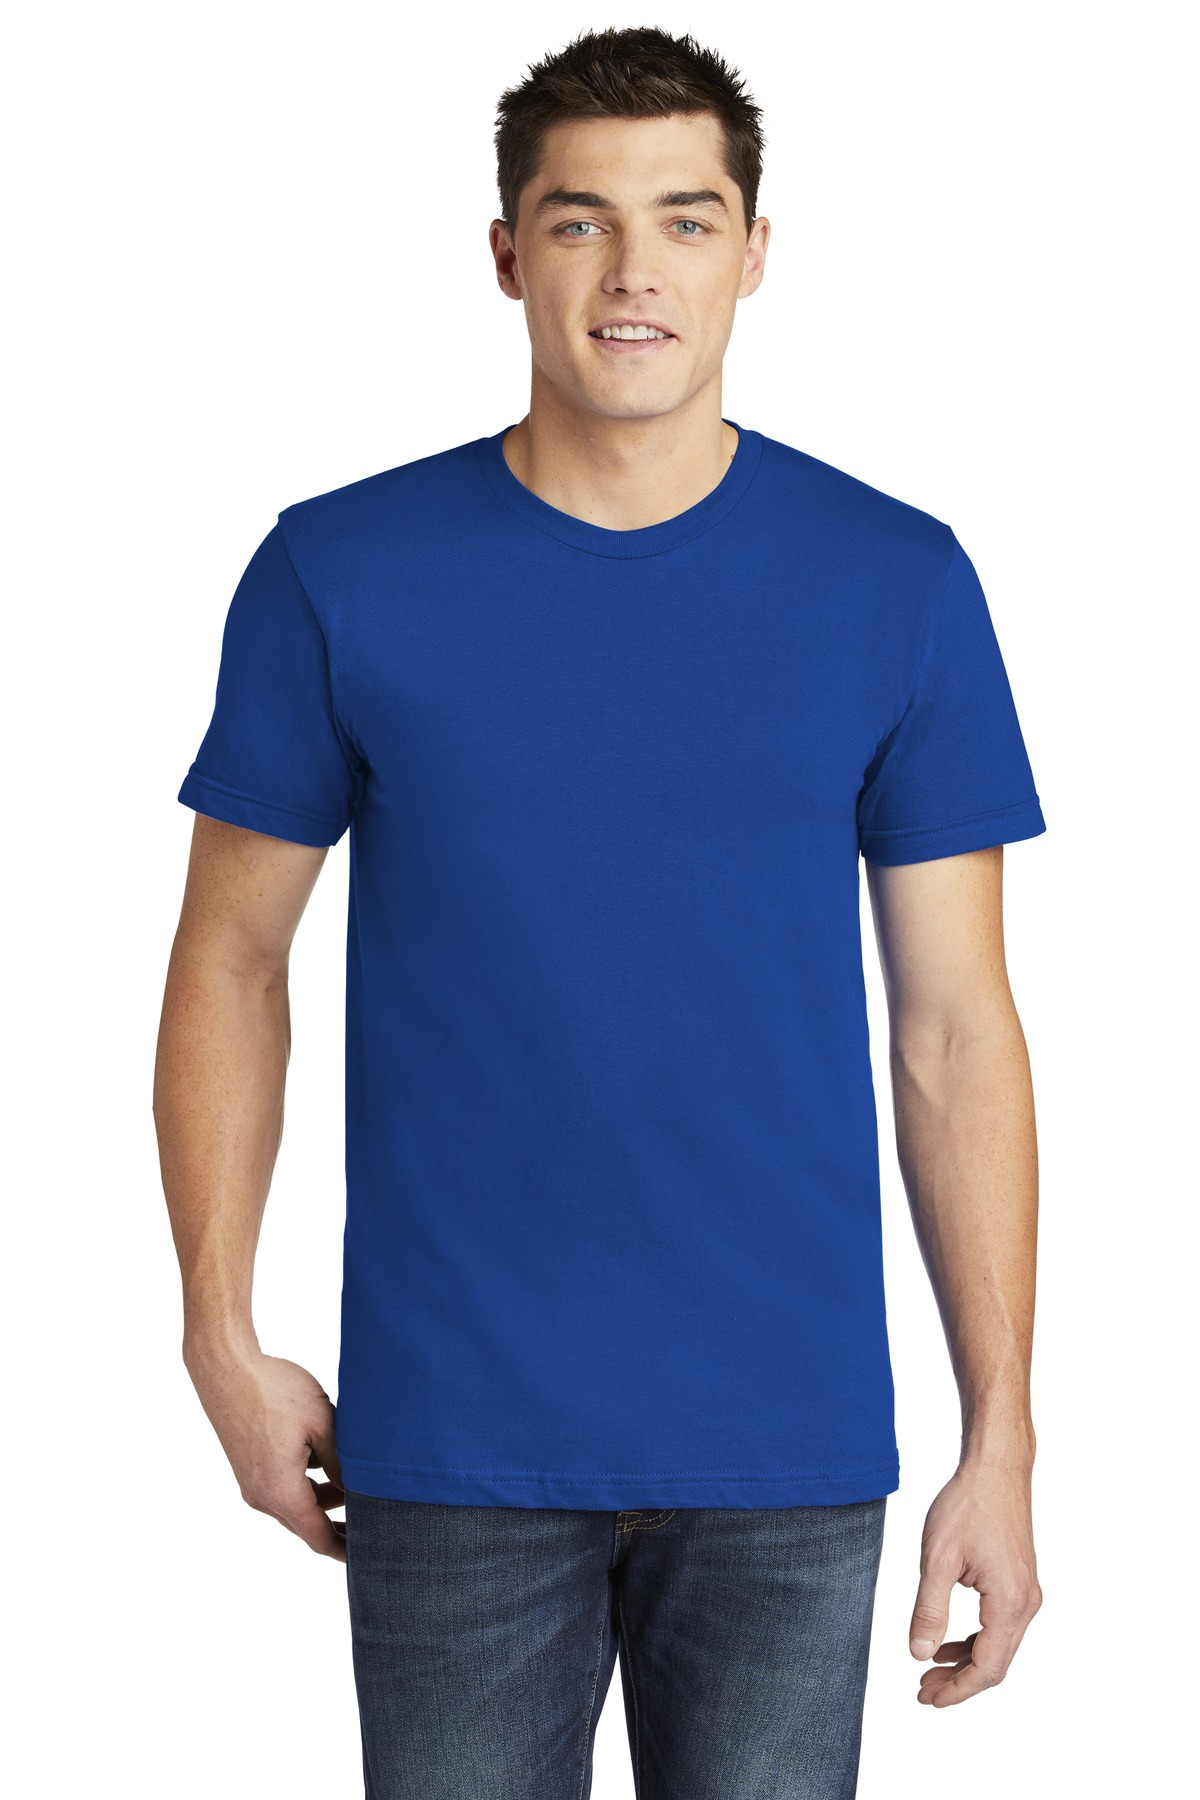 American Apparel  ®  USA Collection Fine Jersey T-Shirt. 2001A - Royal Blue